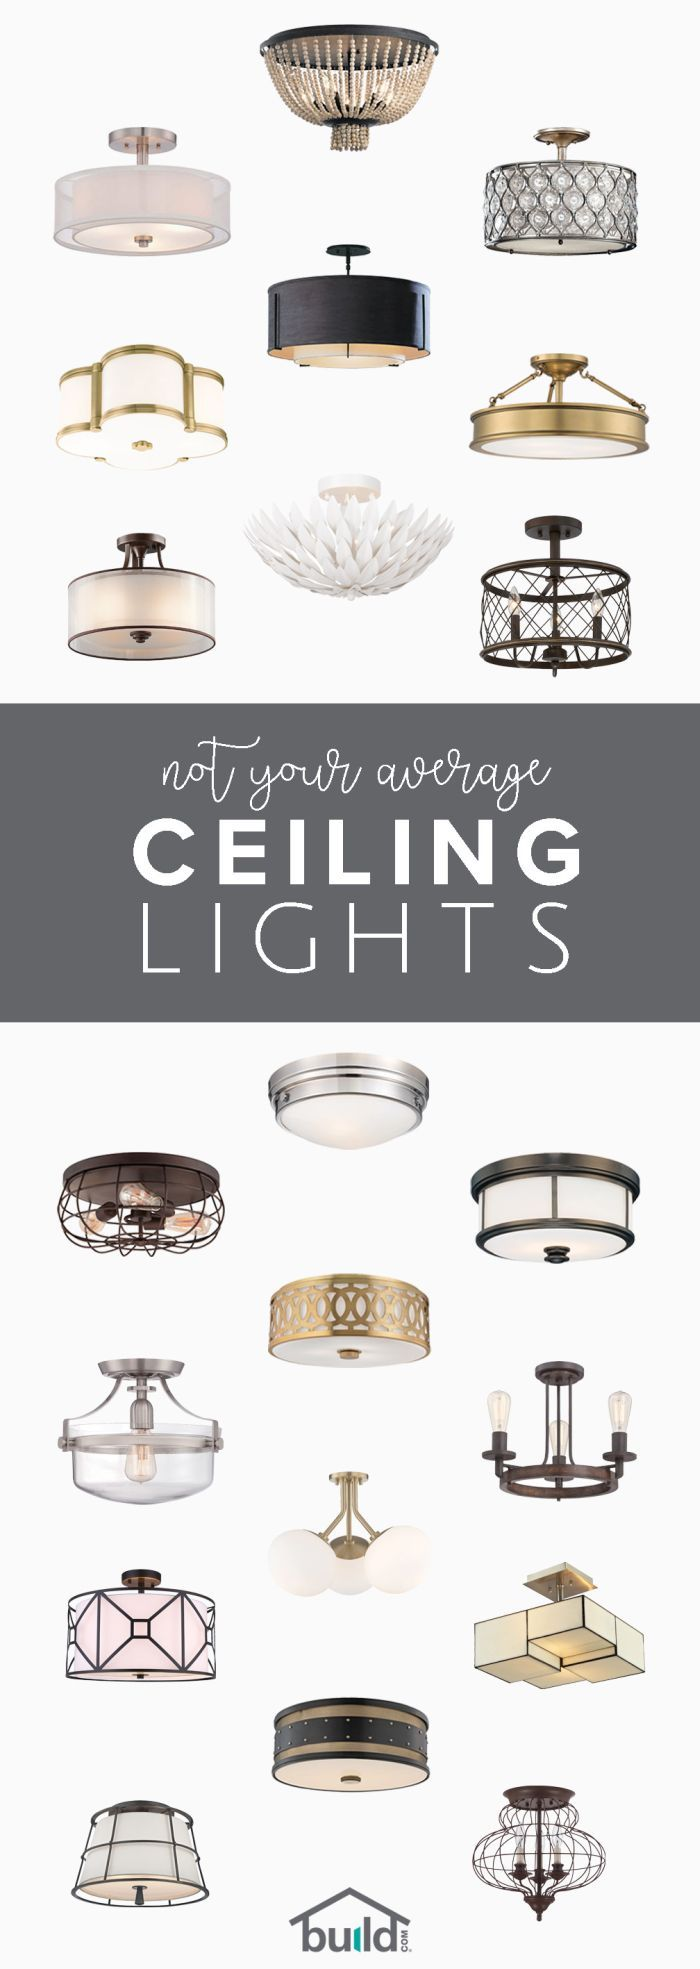 Shop Build.com for a wide selection of unique ceiling lights that you'll love.